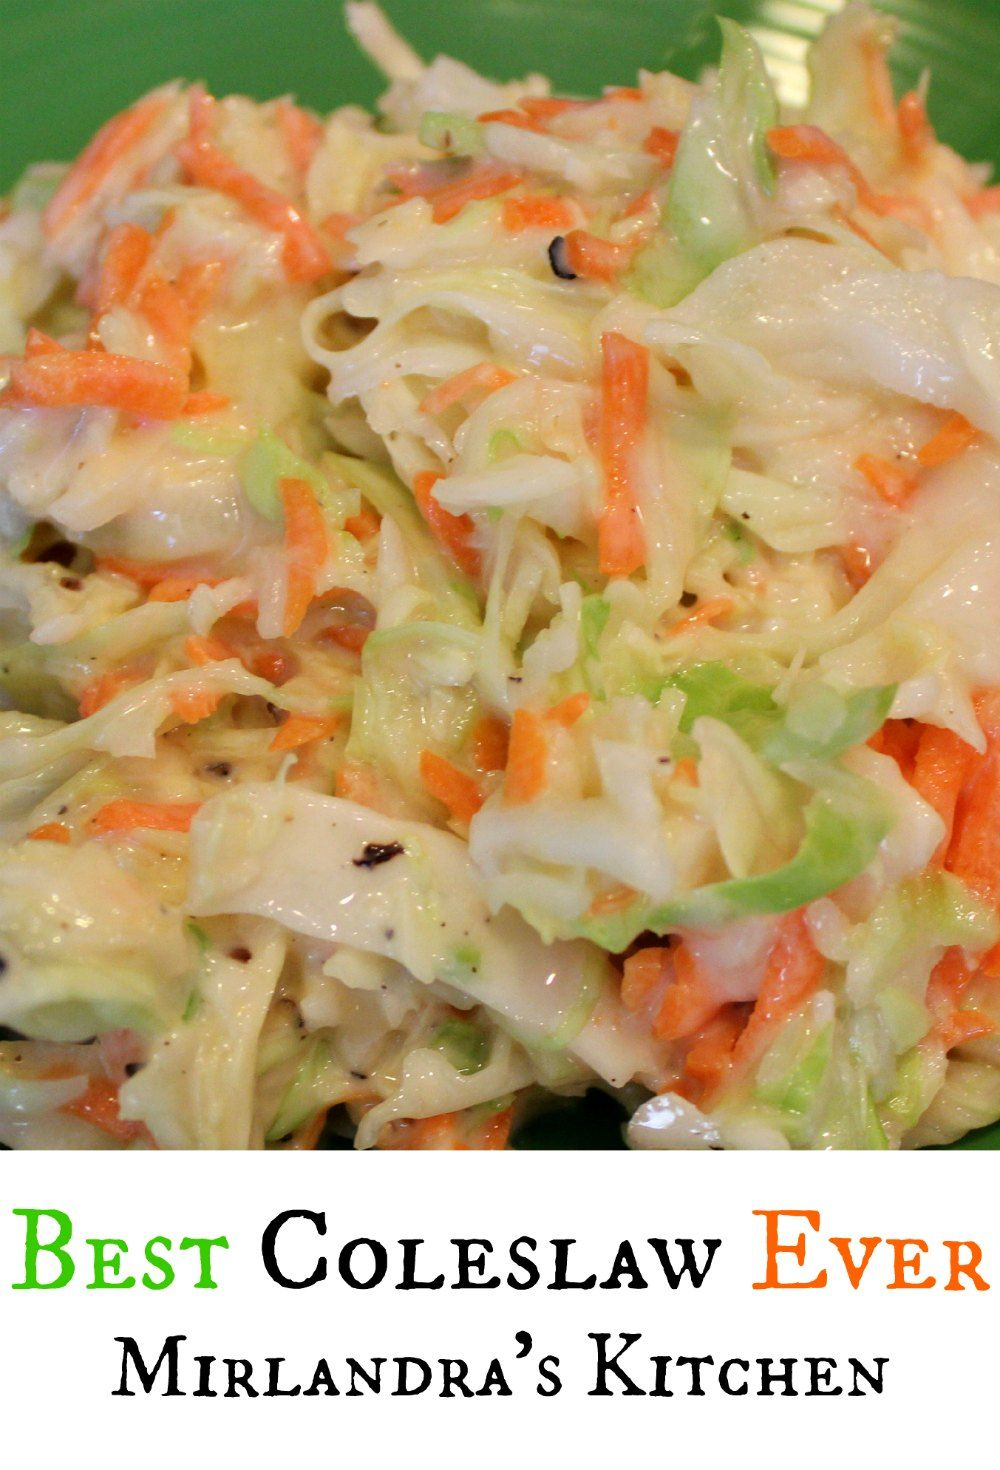 Best Coleslaw Ever According To Me Recipe Coleslaw